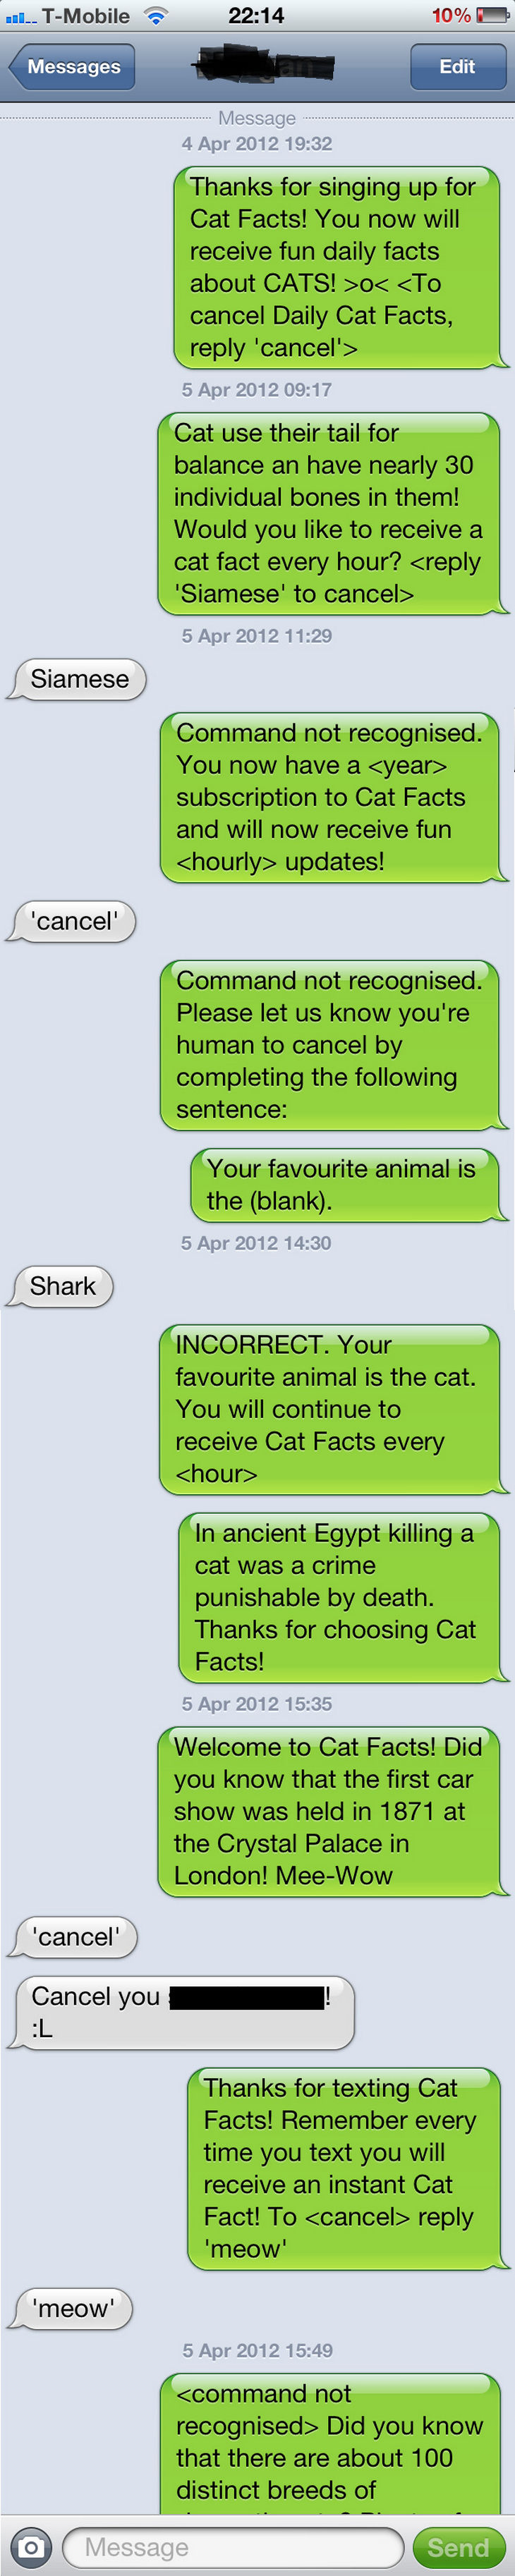 15 People With Ignored Text Messages When People Don't Text Back - He probably wishes he didn't signup for cat facts.